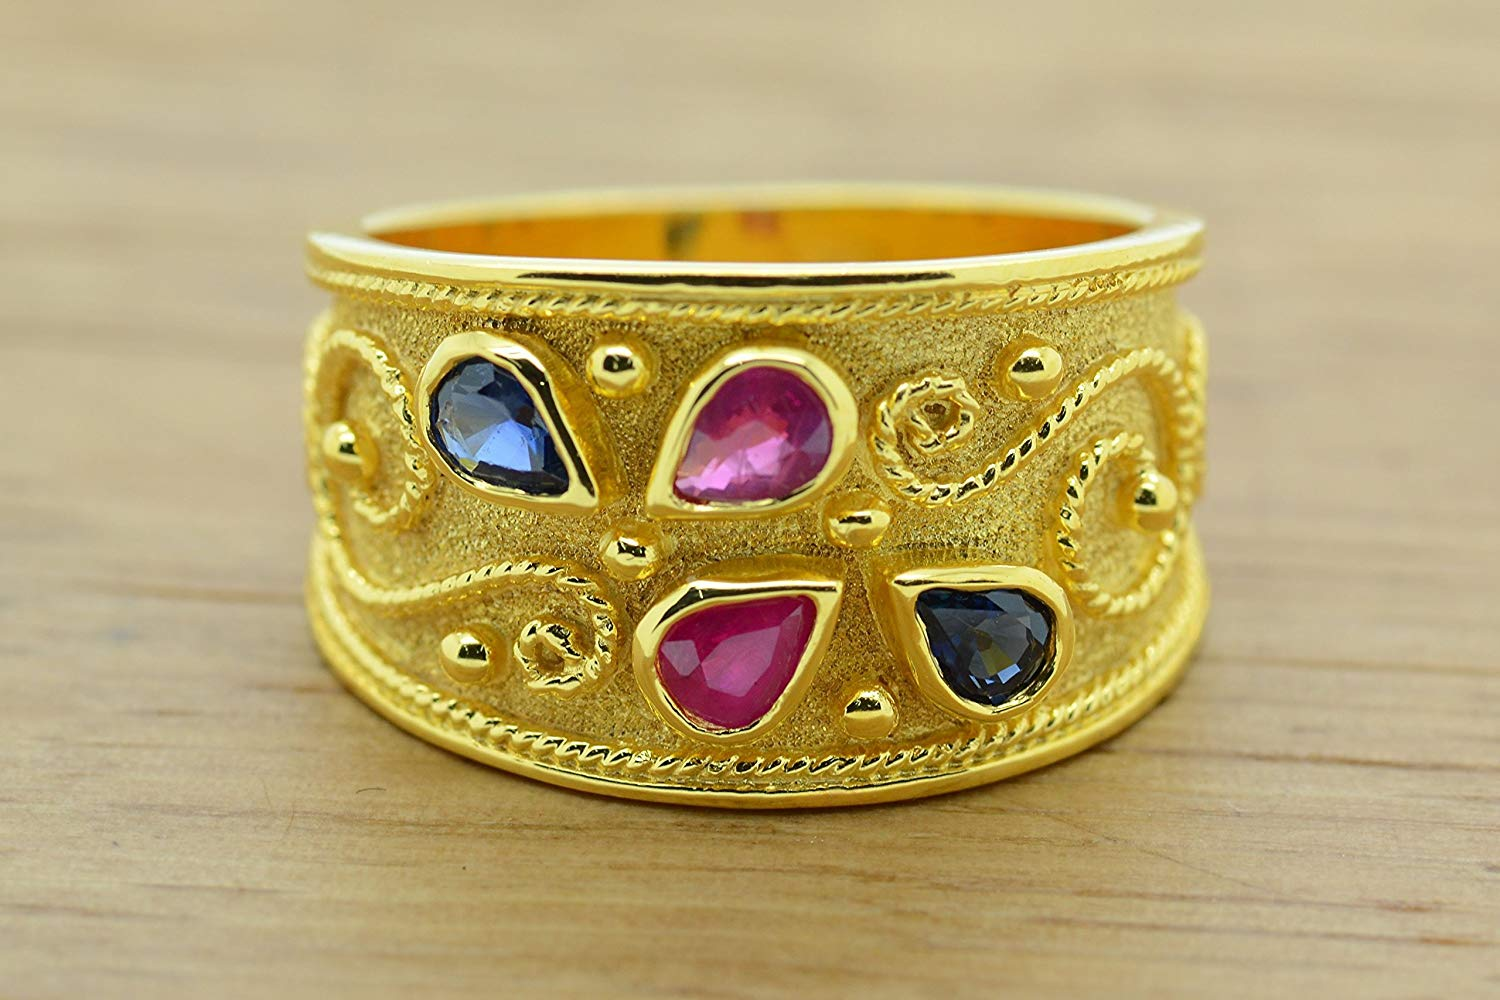 Pear Cut Ruby Sapphire Ring Byzantine Style 925 Sterling Silver 22K Gold Plated Greek Handmade Art Ring, Byzantine Rubies Sapphires CZ Ring, 22K Gold Plated Ring, CZ Band Ring, Sterling Silver Ring, Etruscan Style Ring, Byzantine Ring, Greek Jewelry, Luxury Ring, Medieval Ring, Elegant Sterling